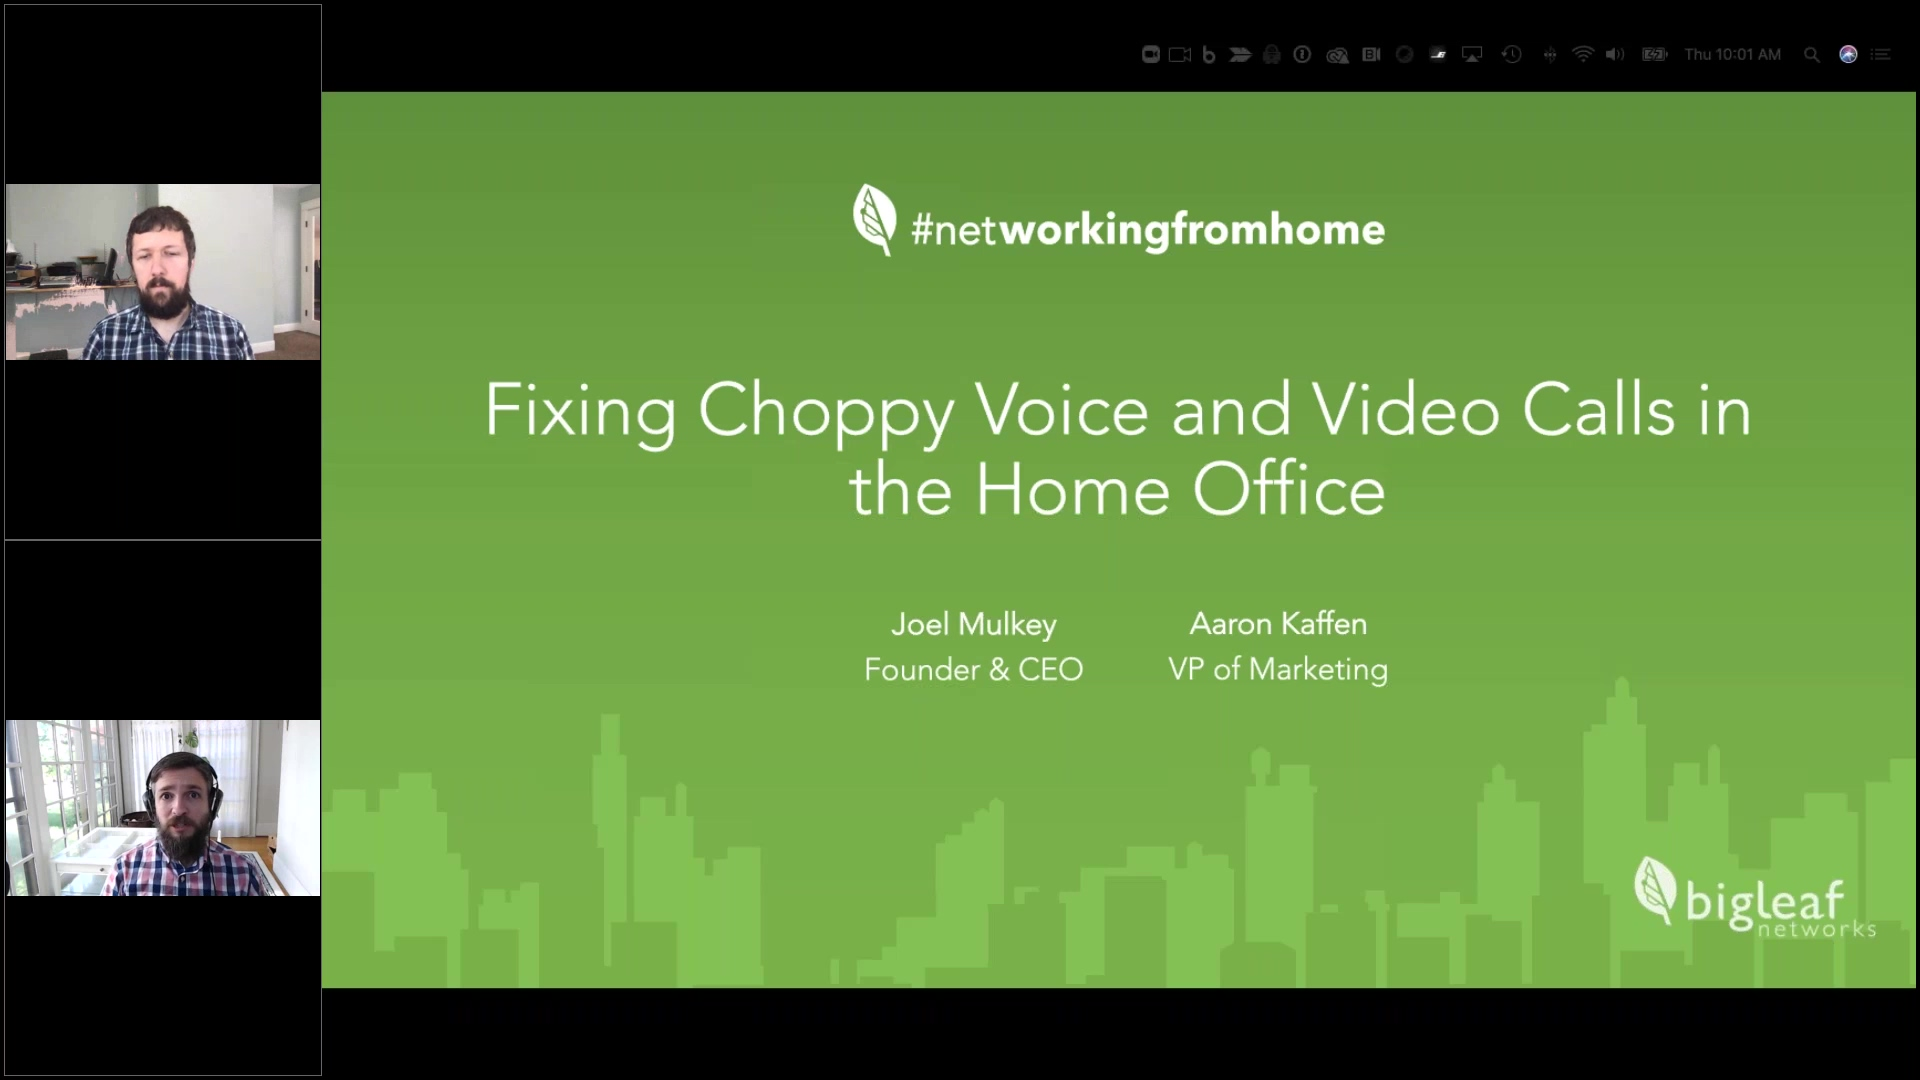 Fixing Choppy Video and Voice Calls in the Home Office